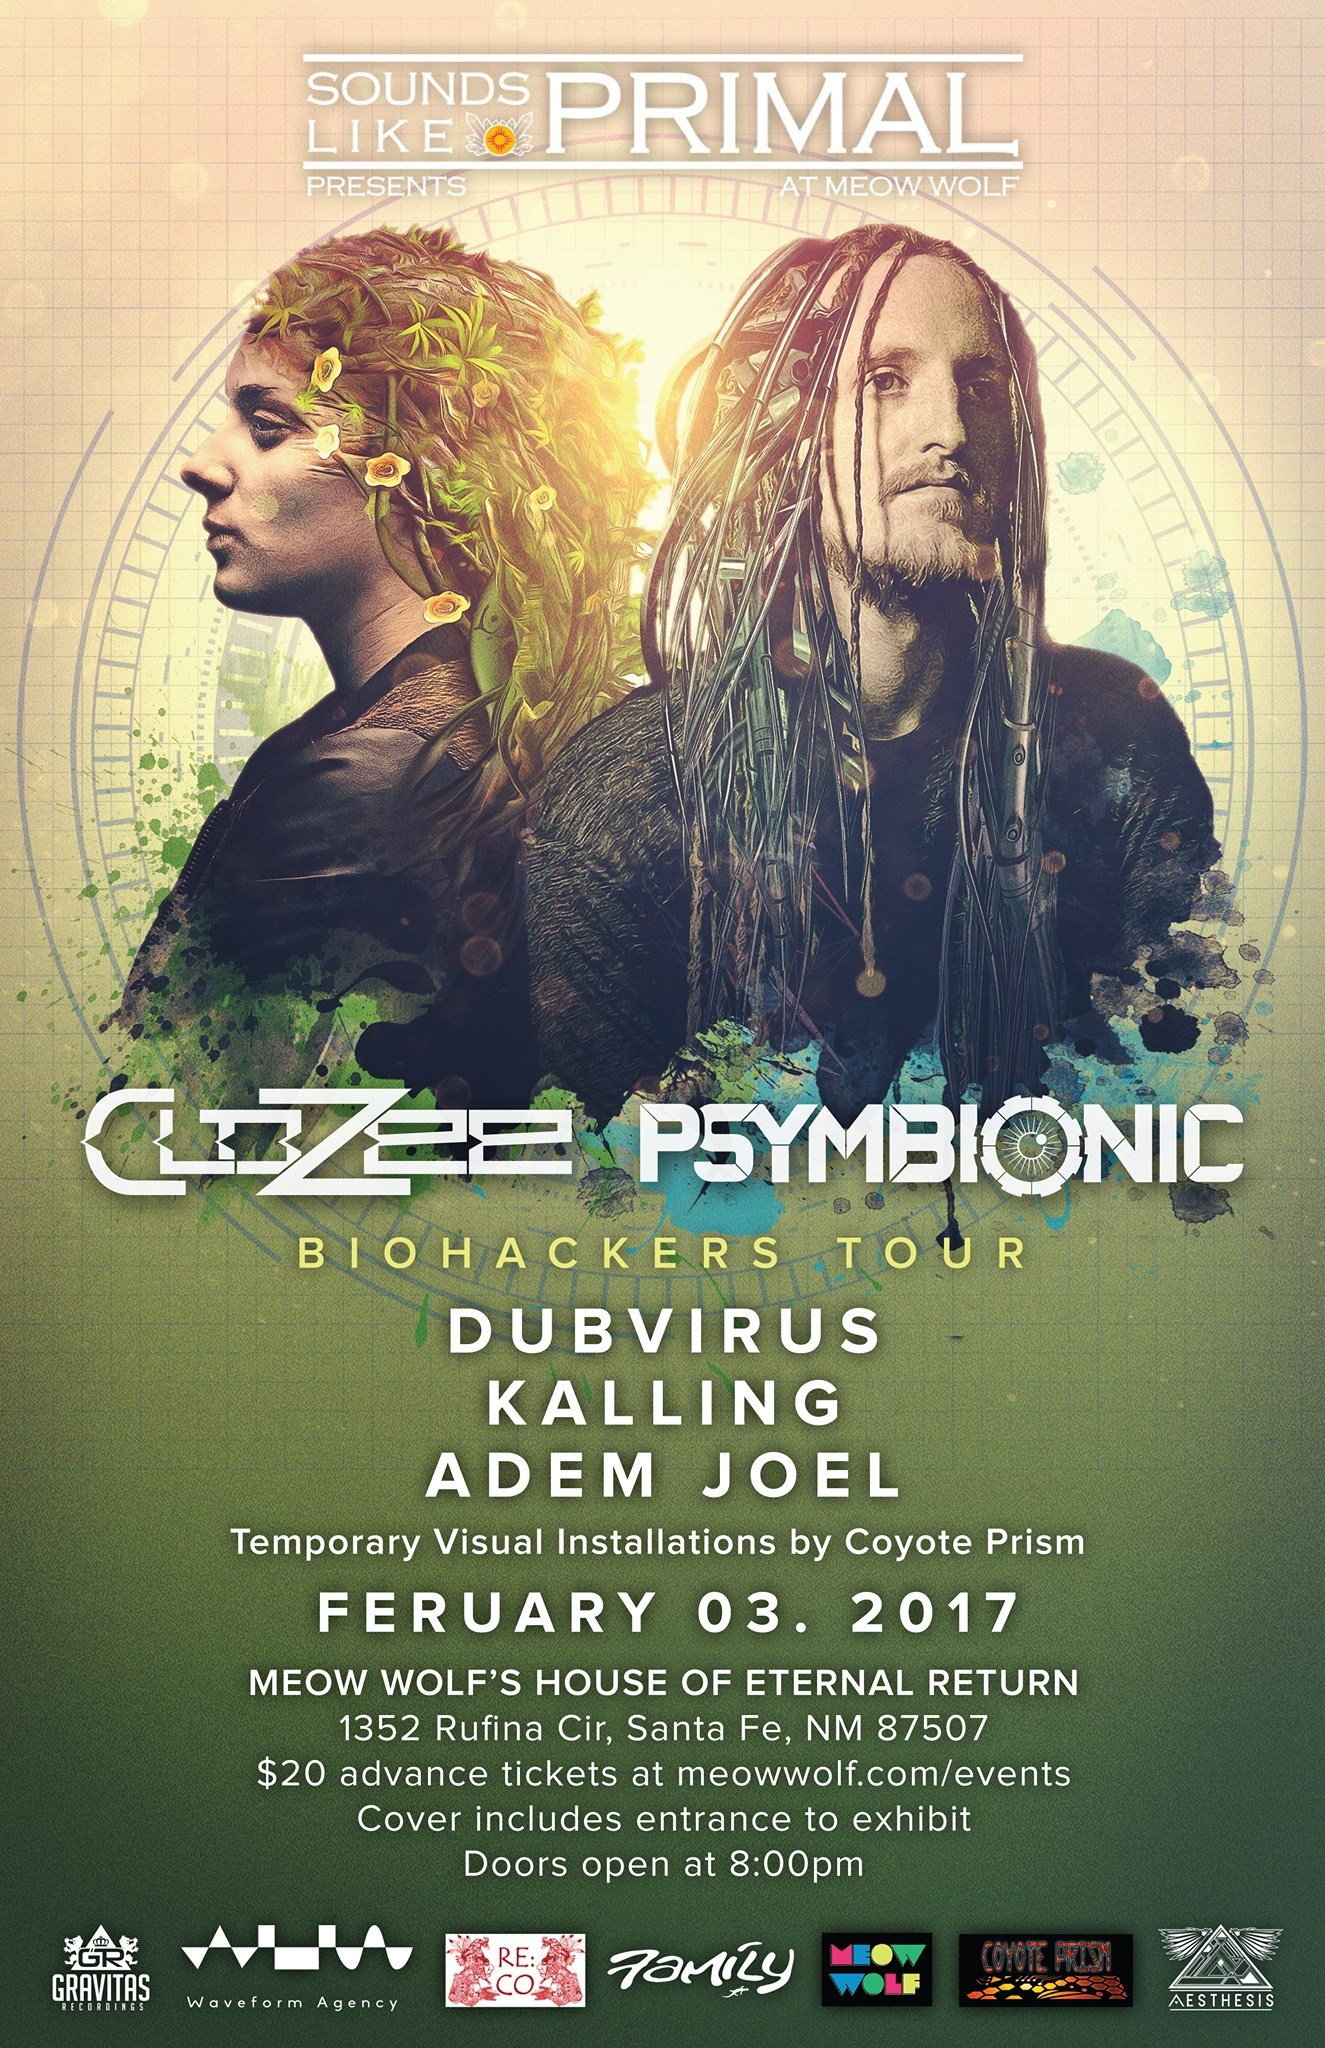 Sounds Like Primal @ Meow Wolf Feat. Clozee, Psymbionic & More Feb 3rd (Santa Fe)